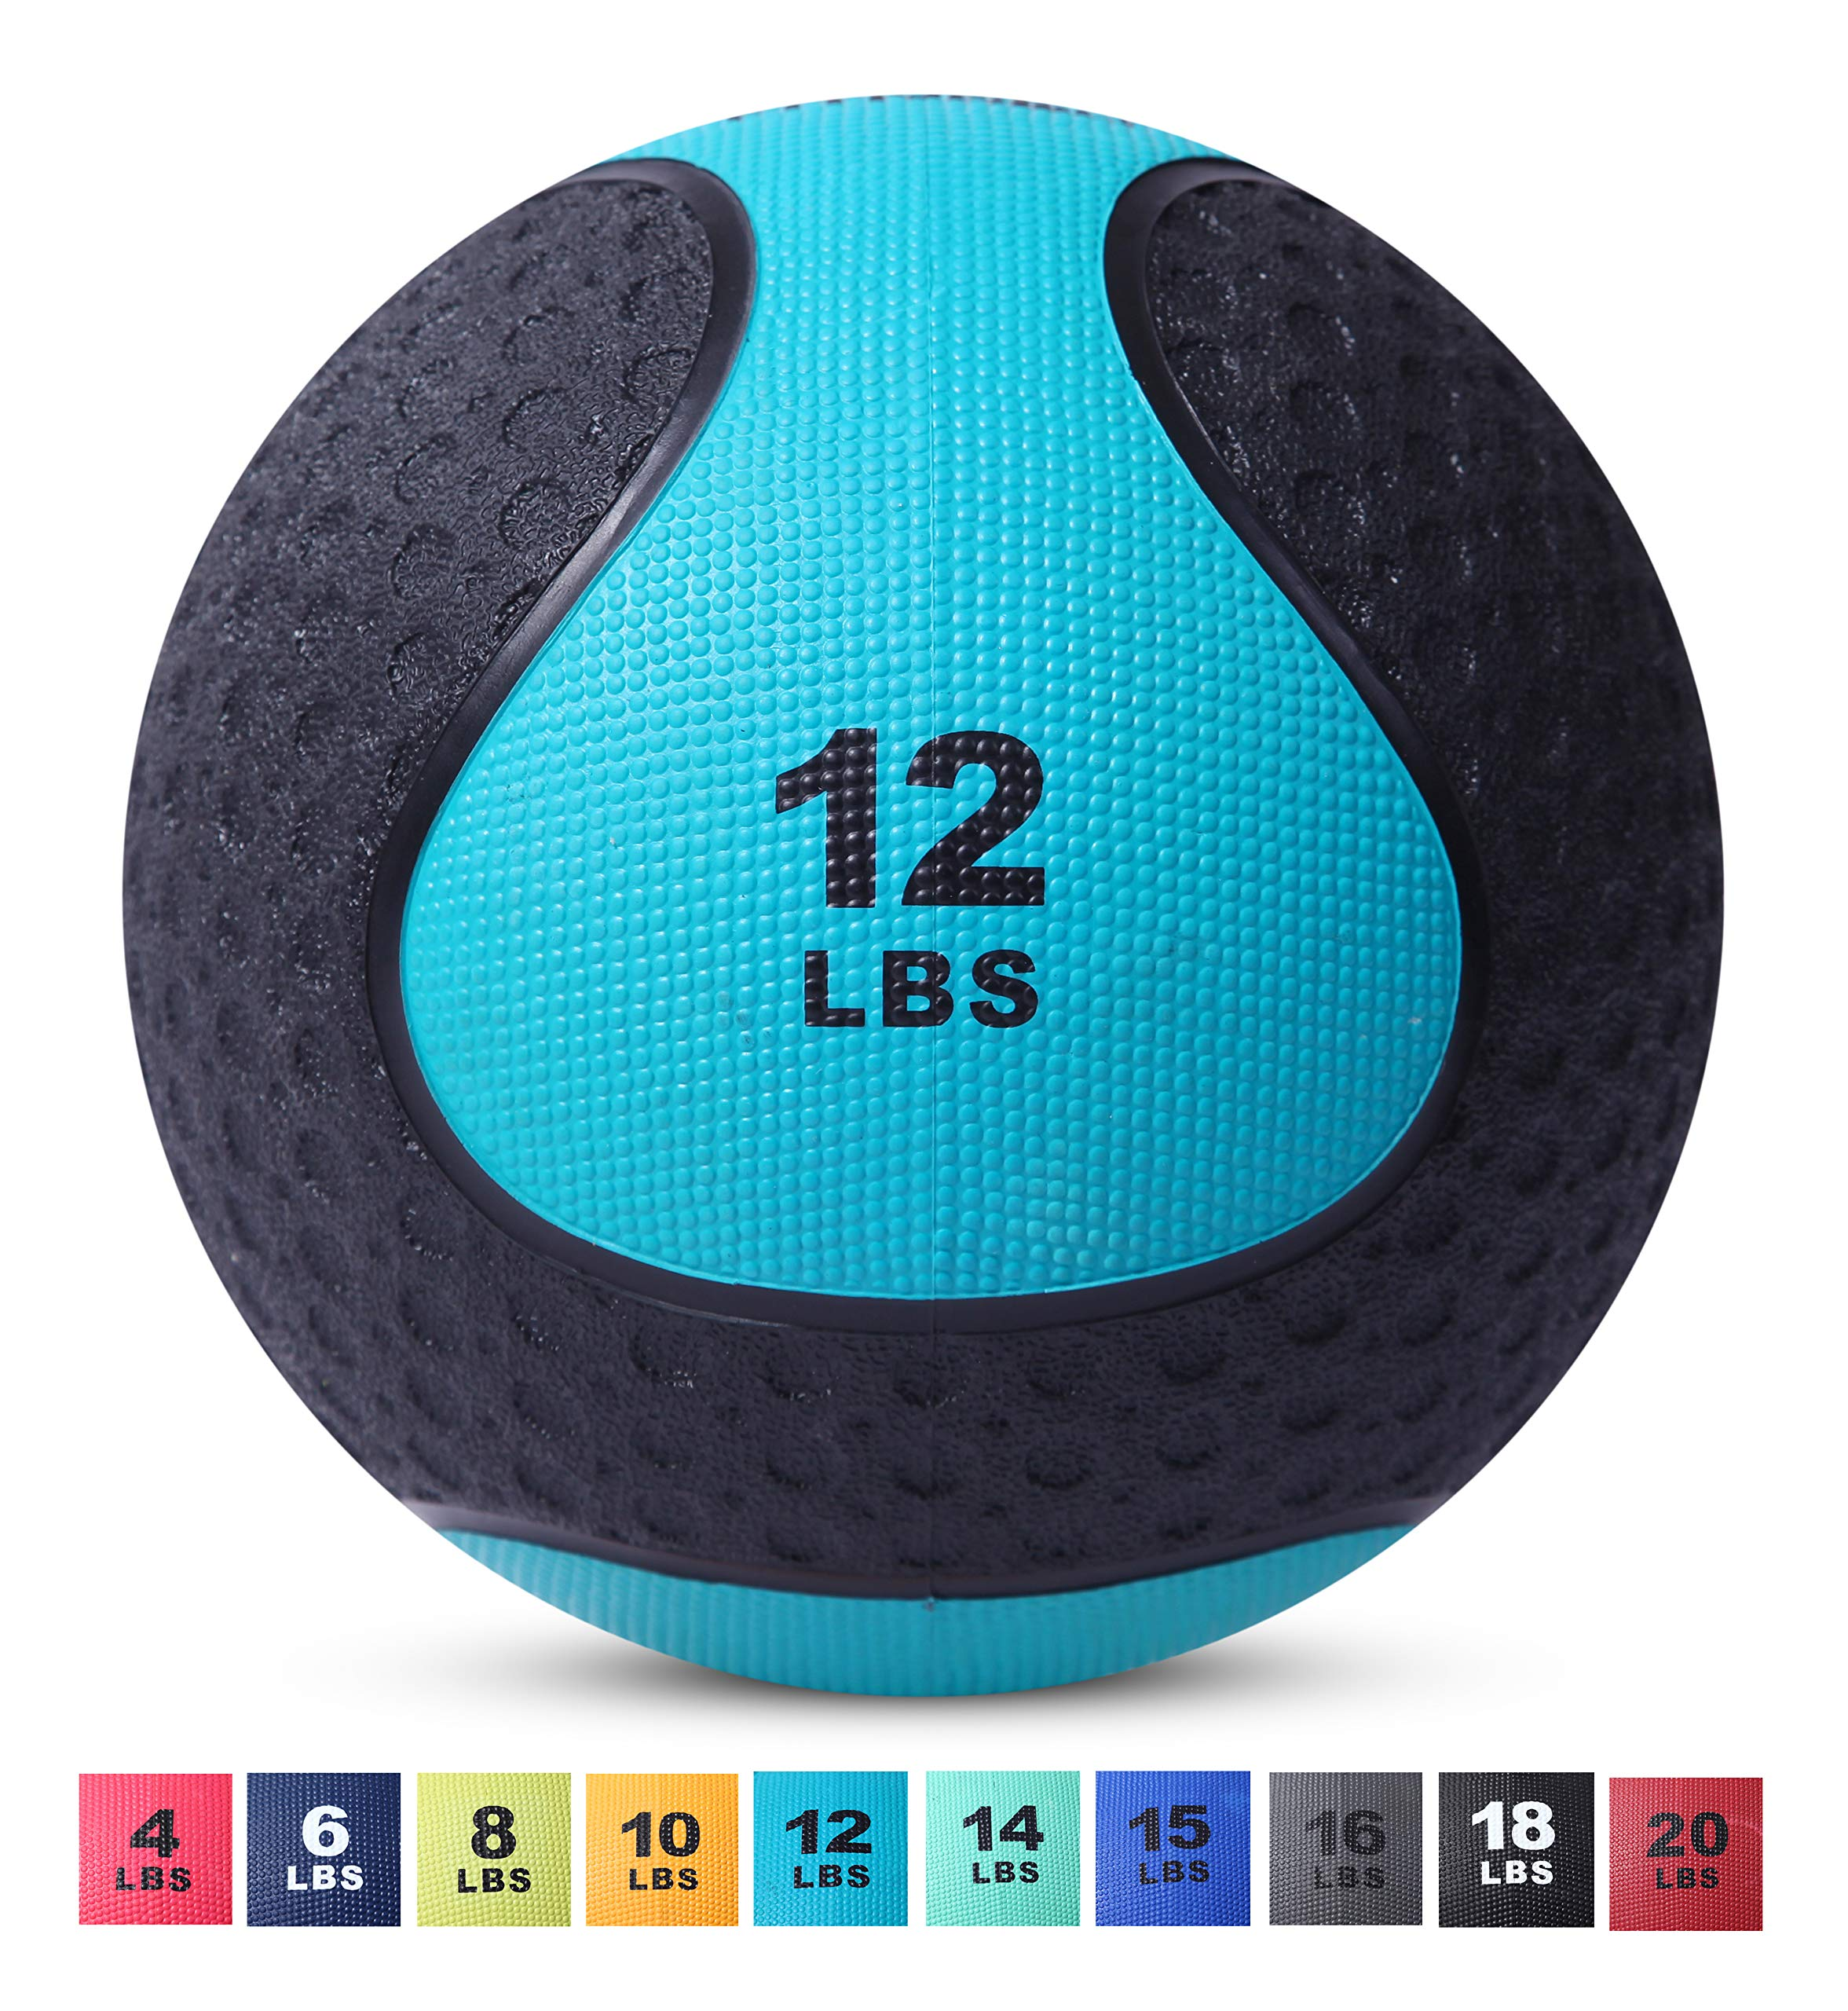 Day 1 Fitness Medicine Exercise Ball with Dual Texture for Superior Grip 12 Pounds - Fitness Balls for Plyometrics, Workouts - Improves Balance, Flexibility, Coordination